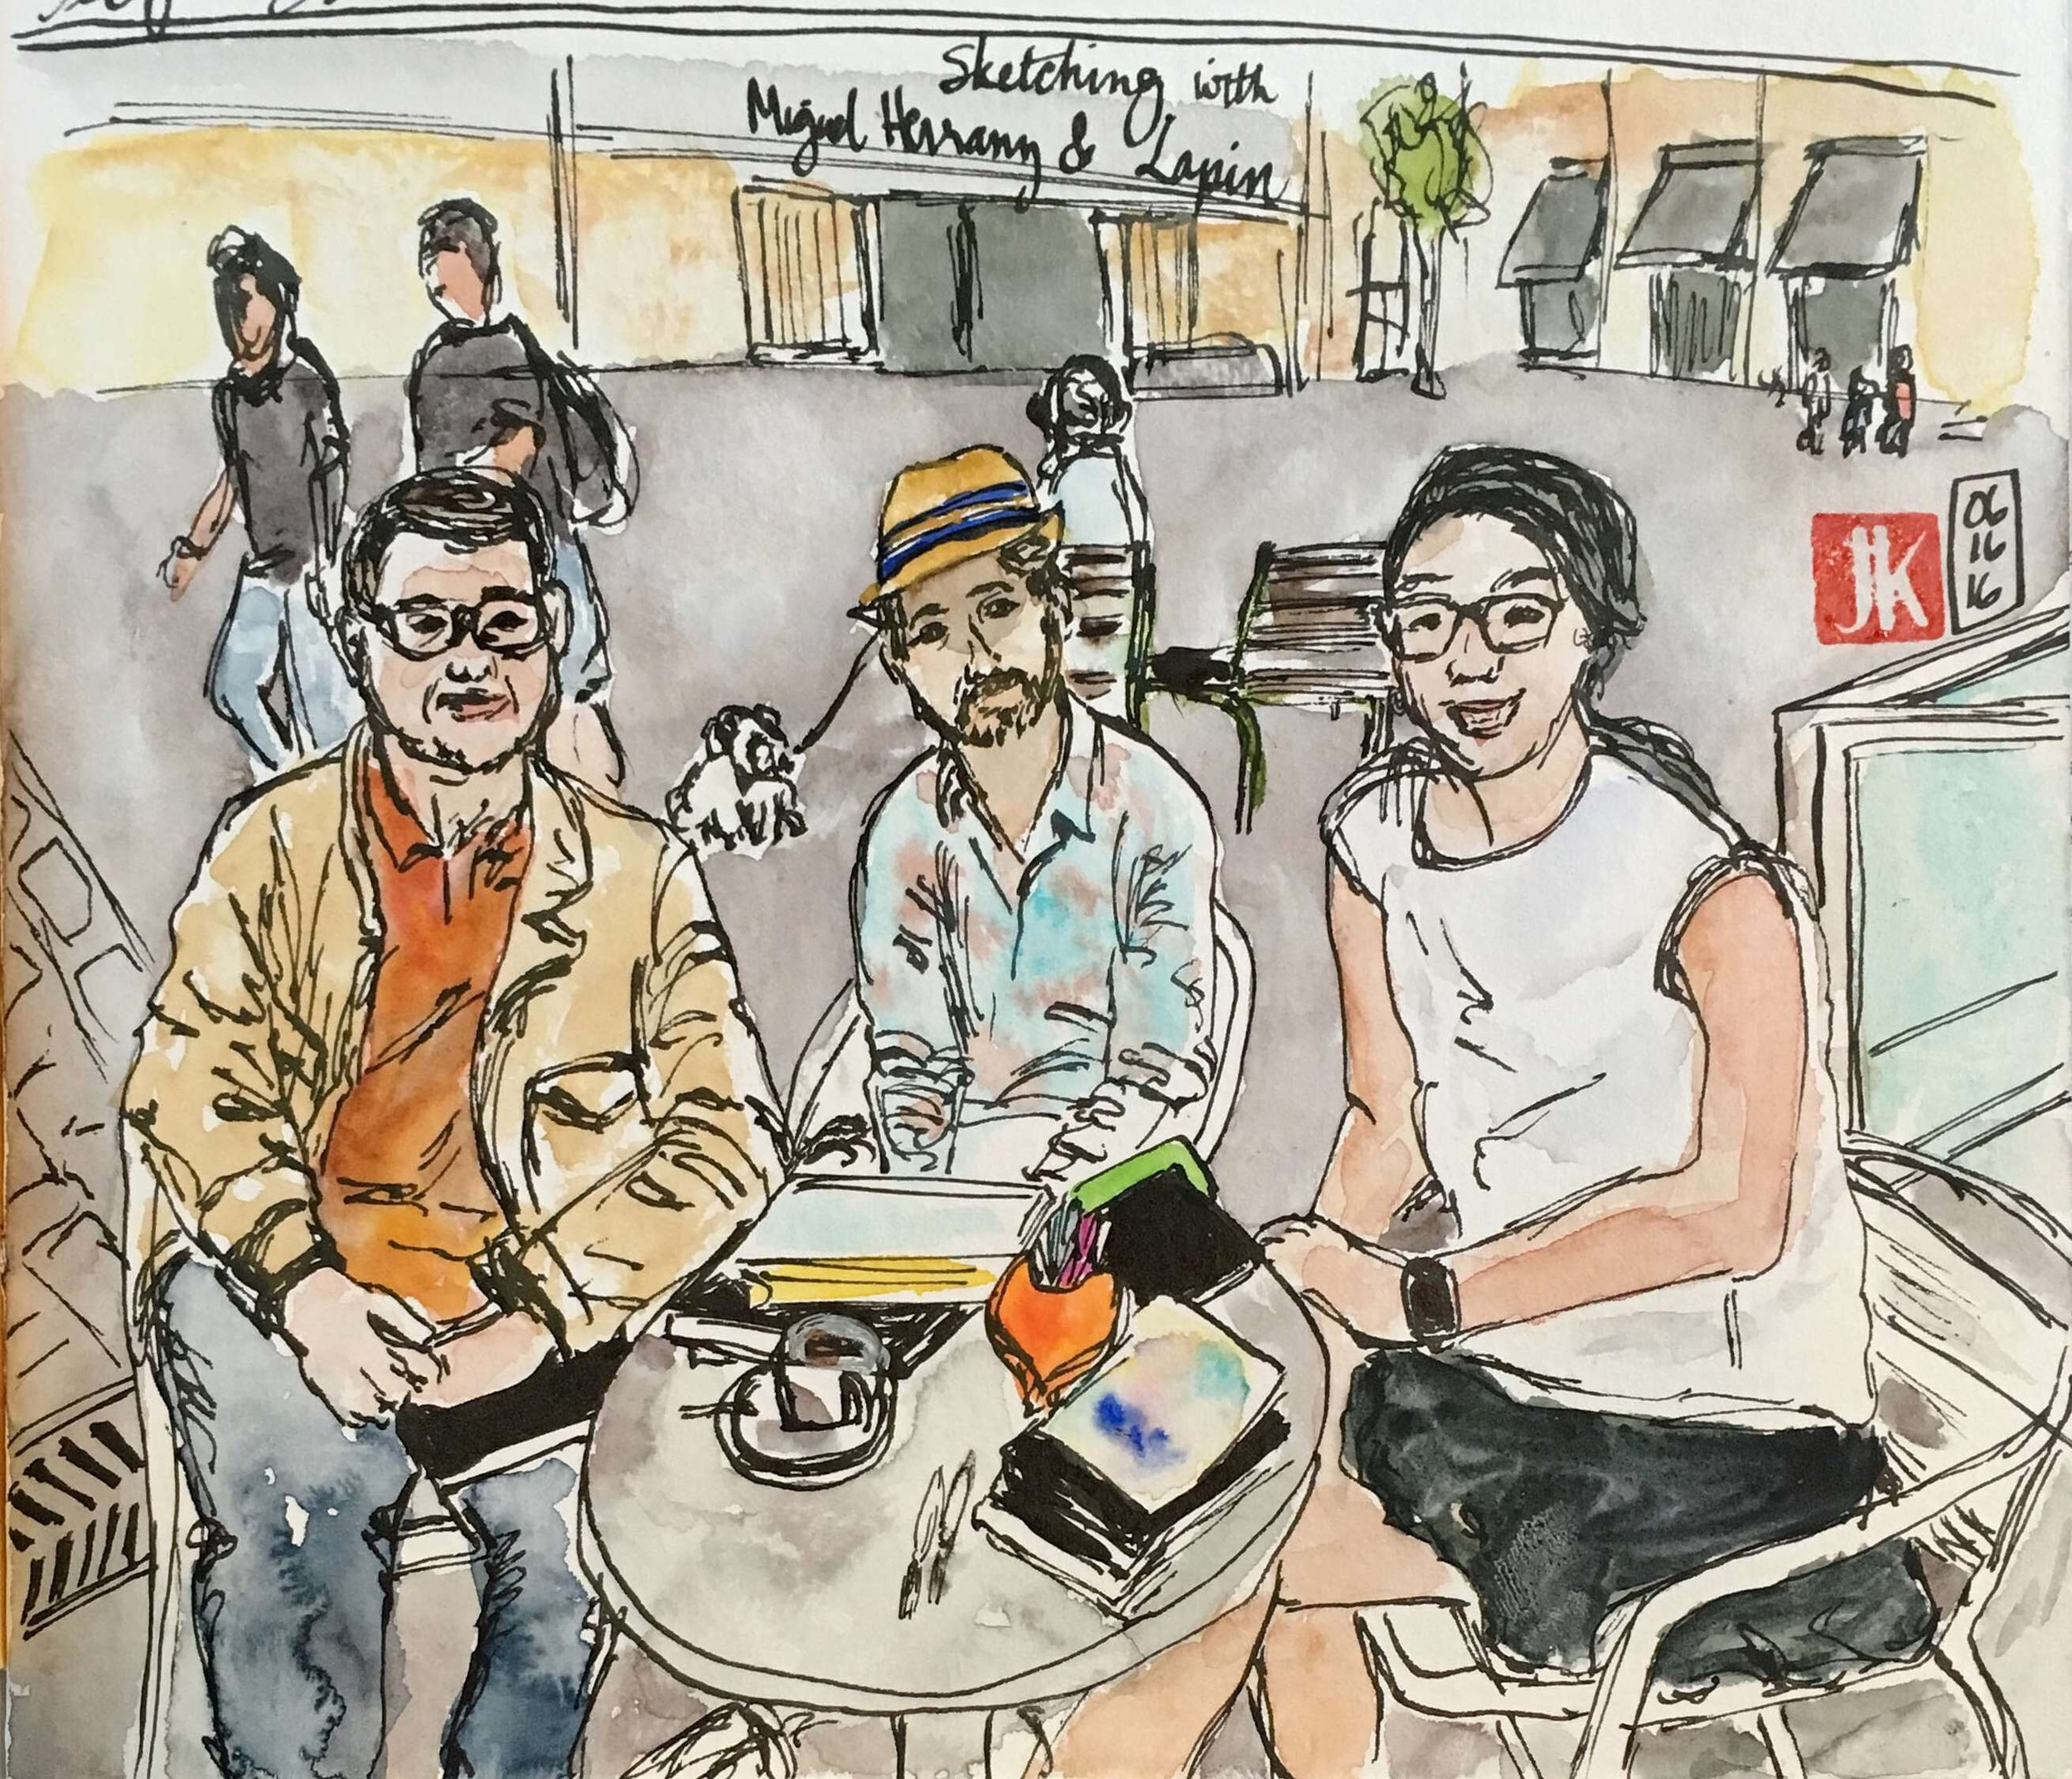 Sketching with Miguel Herranz and Lapin near the Cultural Center